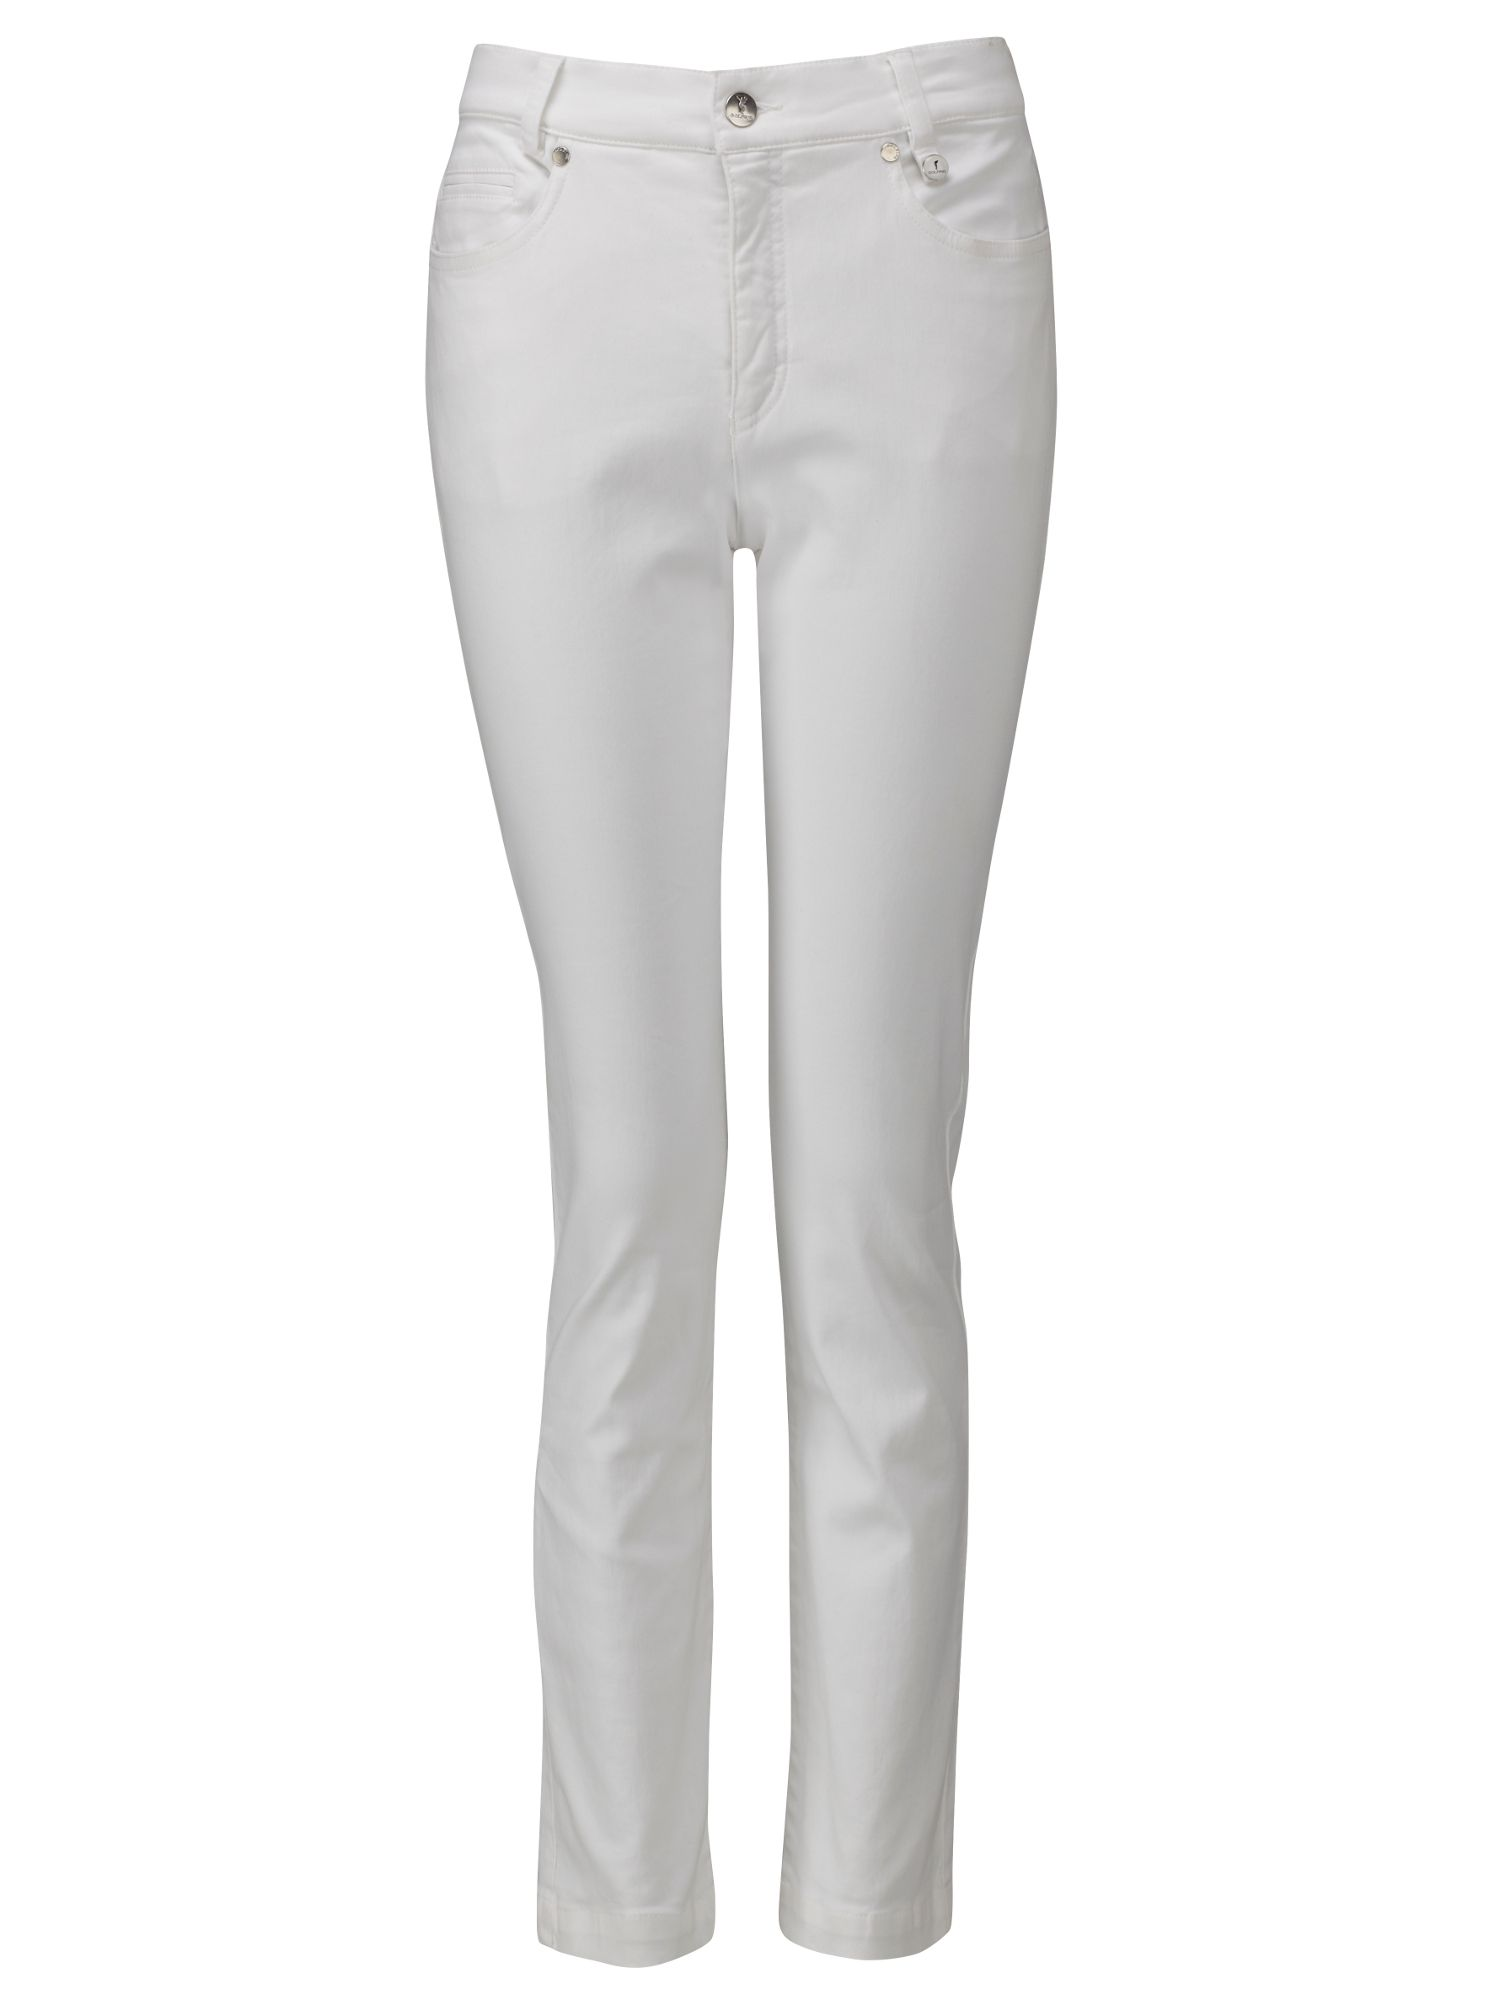 7/8 cotton stretch trousers